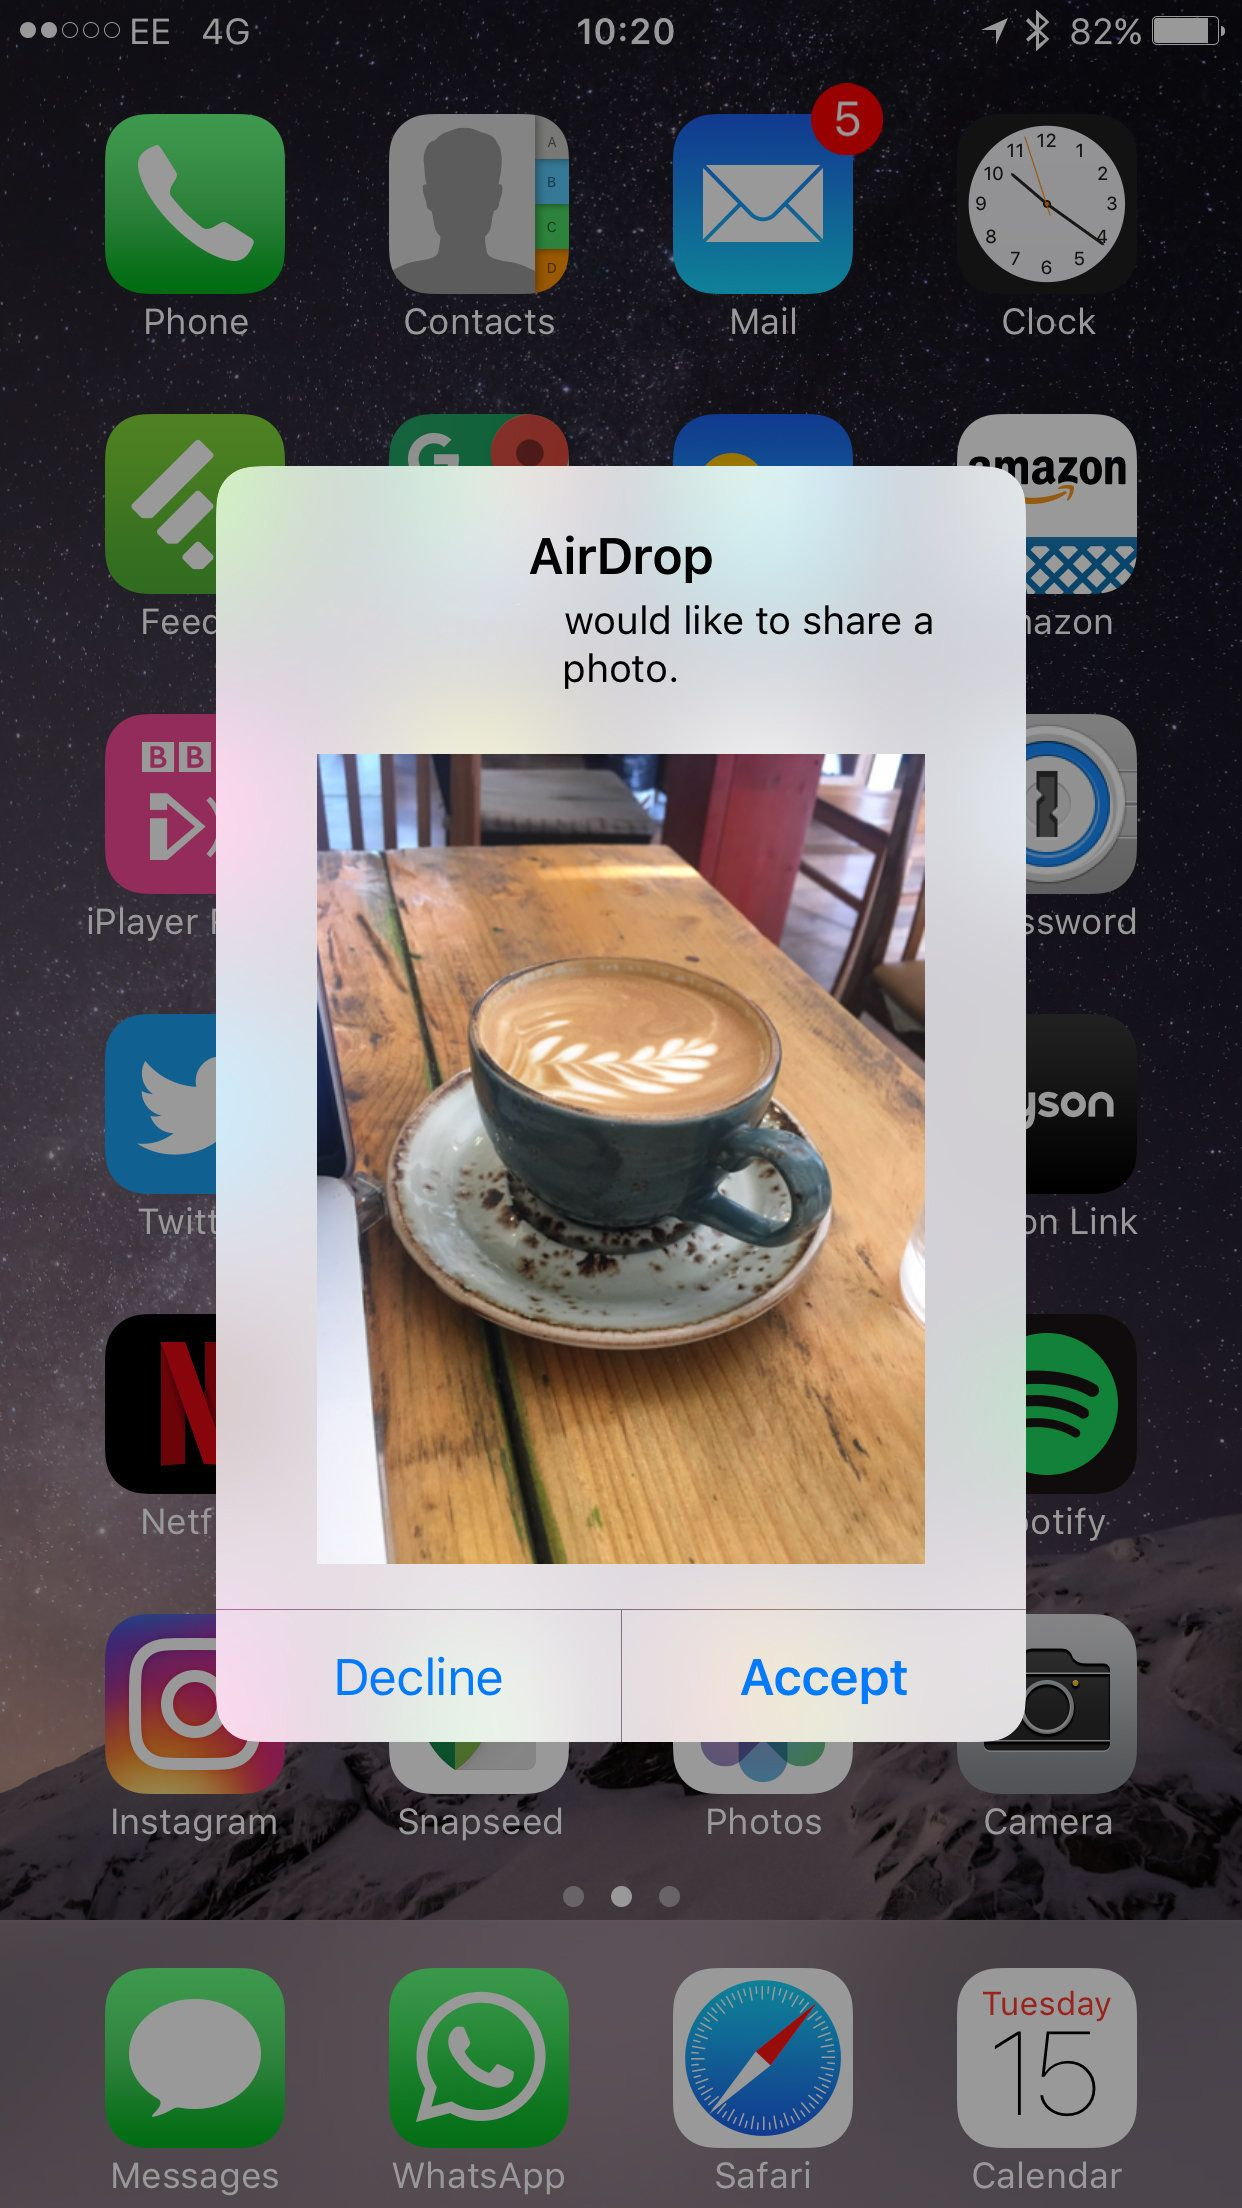 People Are Being Sexually Harassed Over AirDrop, Here's What It Is And How To Protect